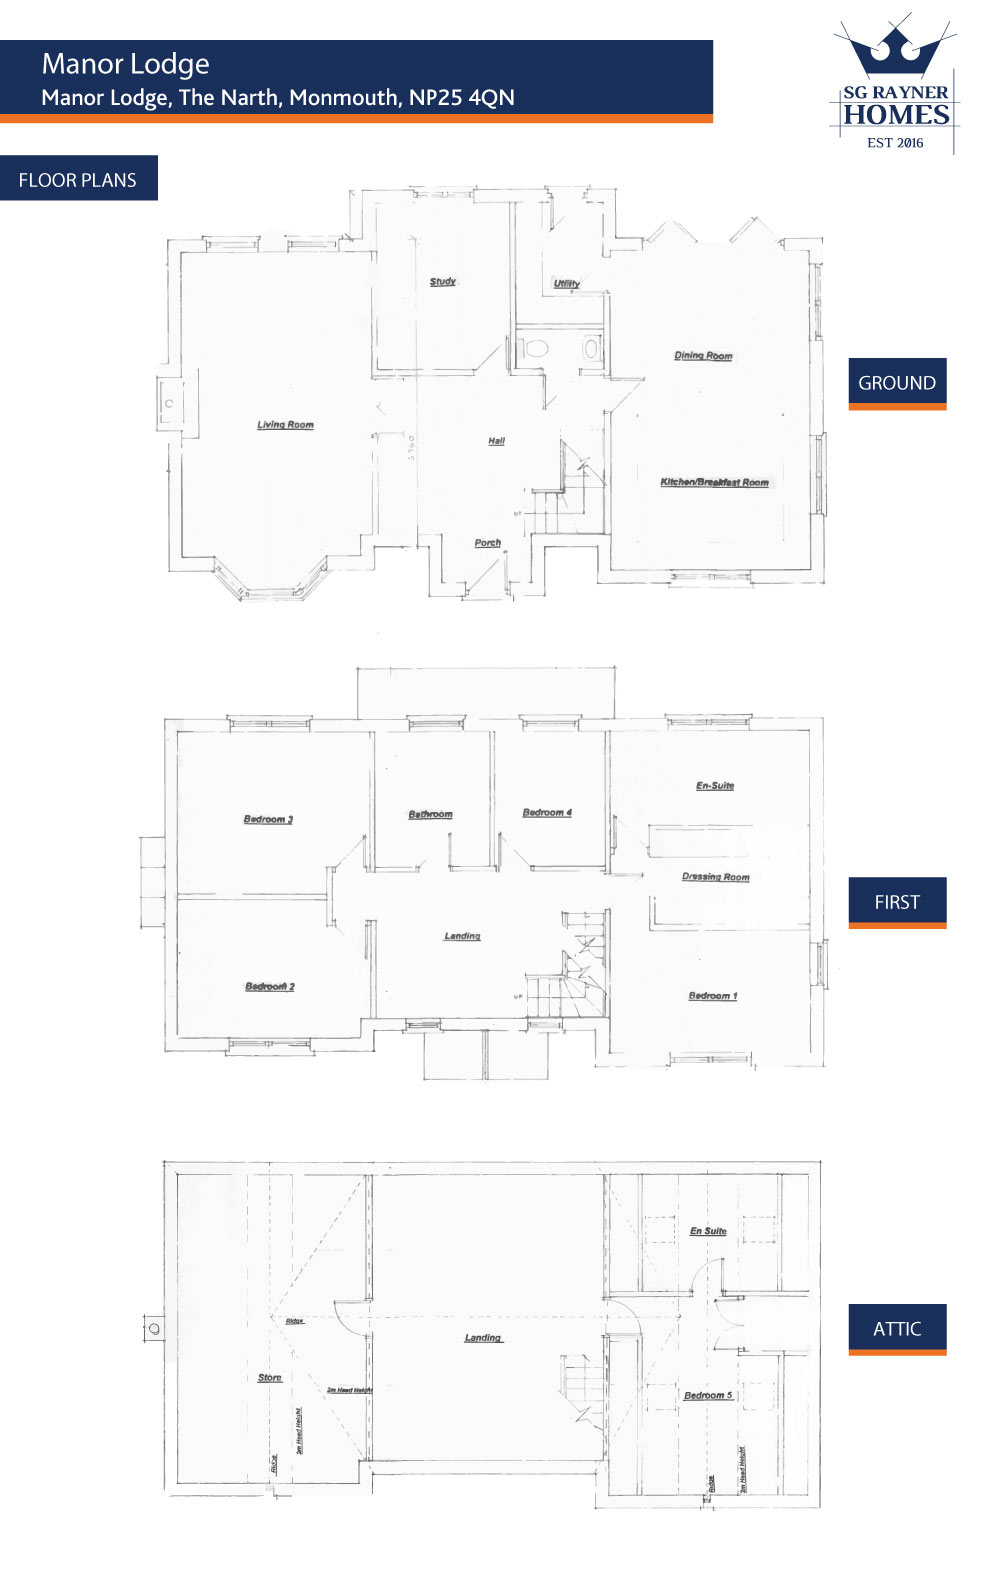 SG Rayner Homes - Manor Lodge Floor Plans